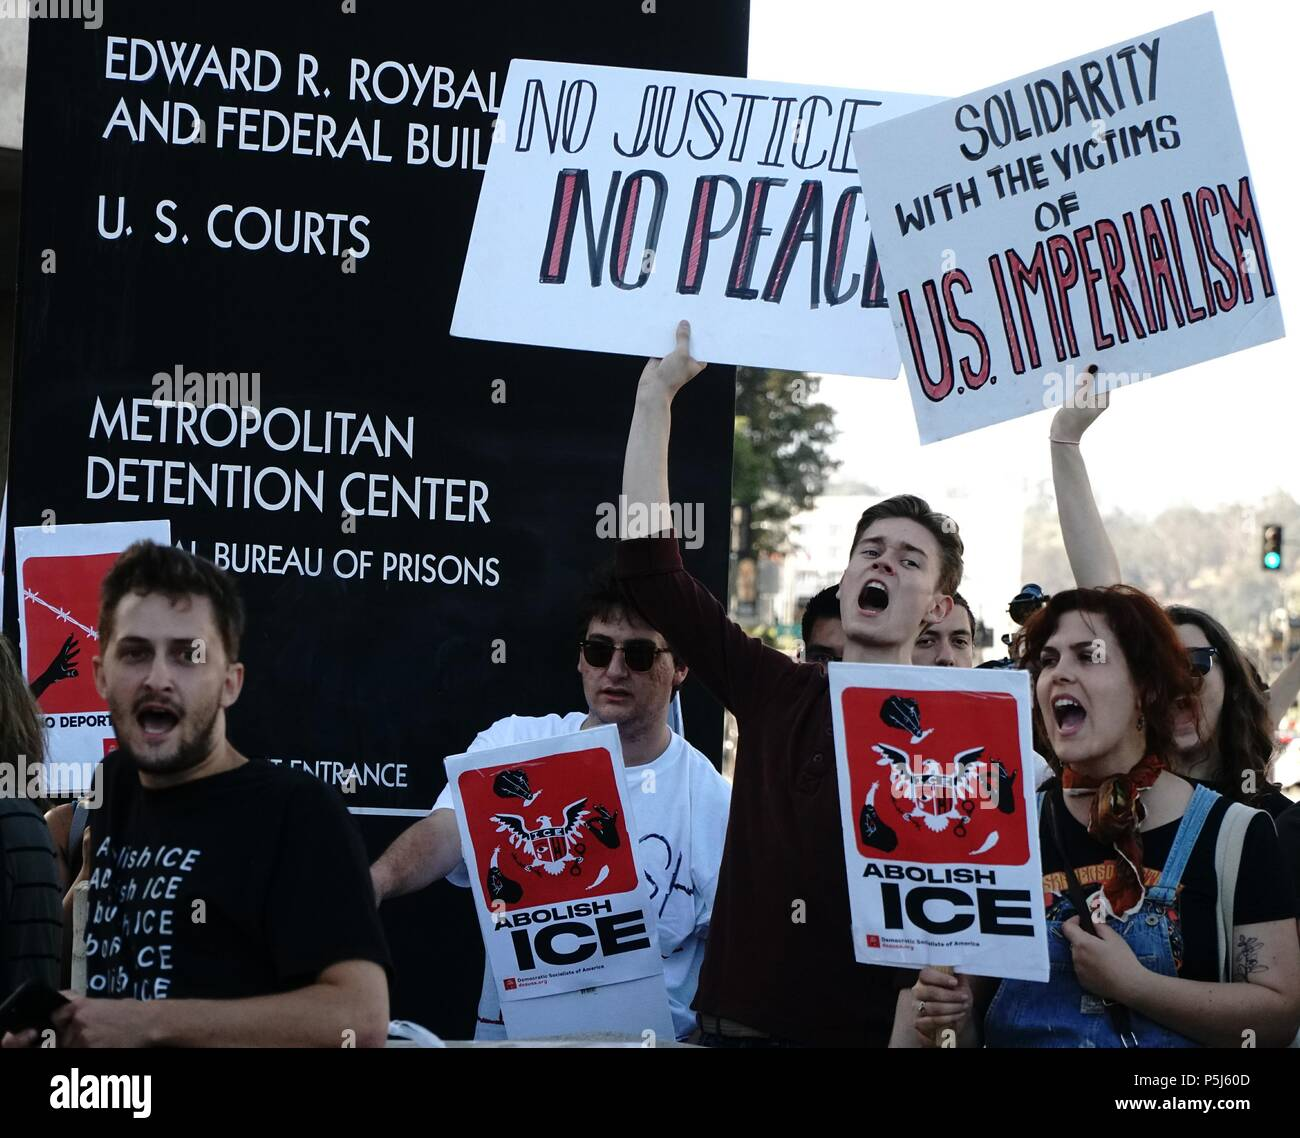 Los Angeles, California, USA. 26th June, 2018. Hundreds of Demonstrators from Democratic Socialists of America and Occupy ICE organizations gather at Grand Park outside City Hall in Los Angeles. Marching to the Los Angeles, Federal Building ICE (Immigration Customs and Enforcement) disrupting traffic from exiting the facility, demanding action to stop the detention of families. Credit: James Tsukano/Alamy Live News - Stock Image